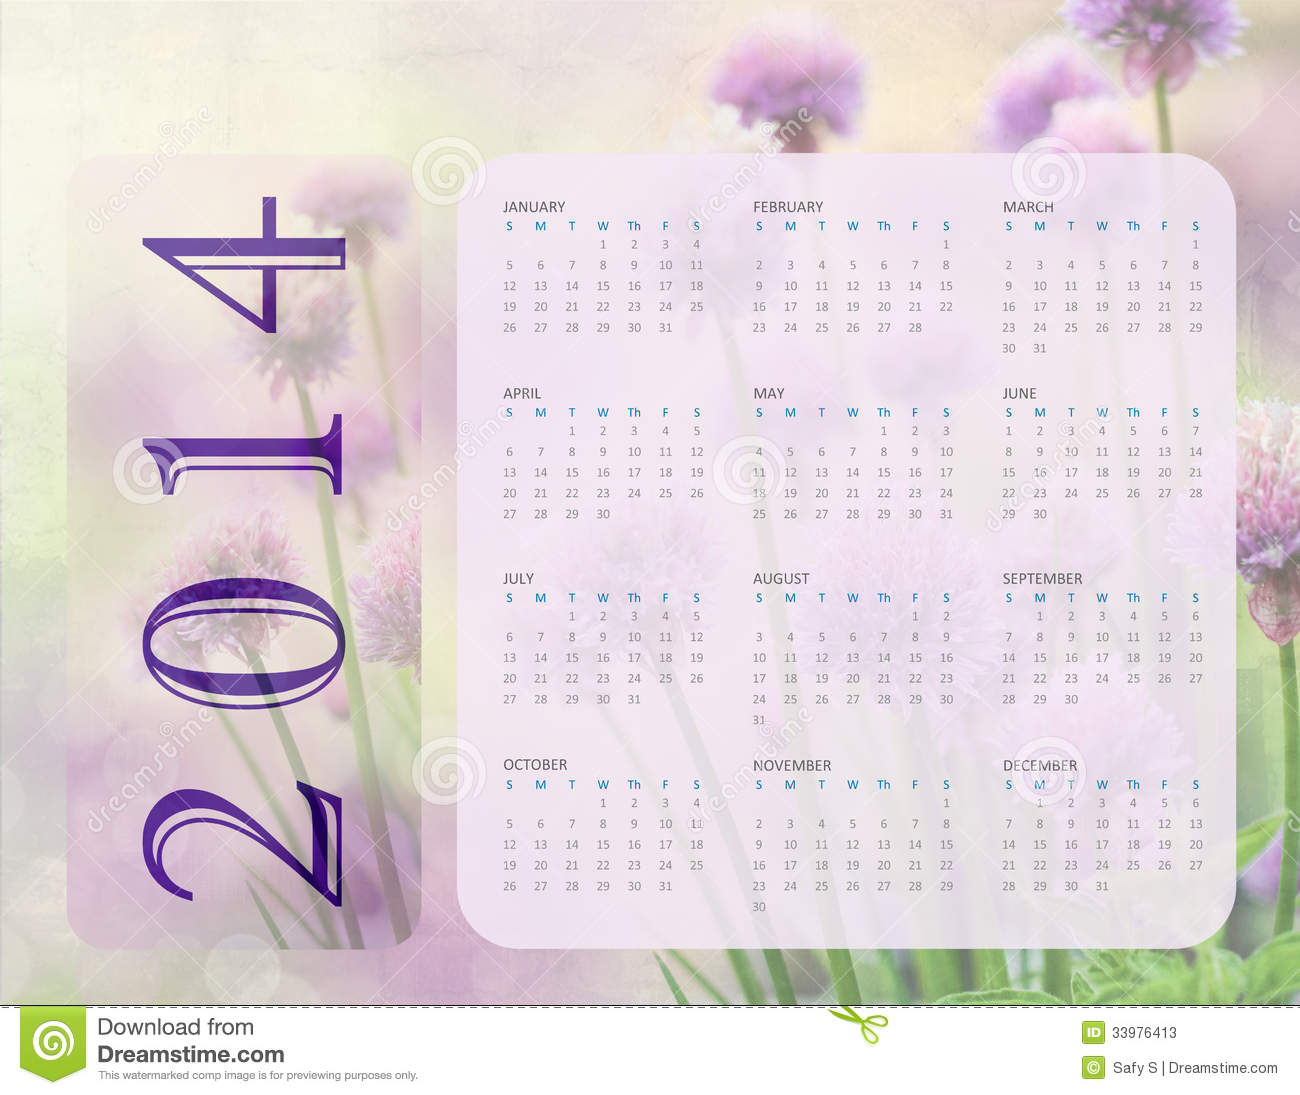 August 2014 Cpo Offers Table Jpg: 2014 Calendar Stock Photos